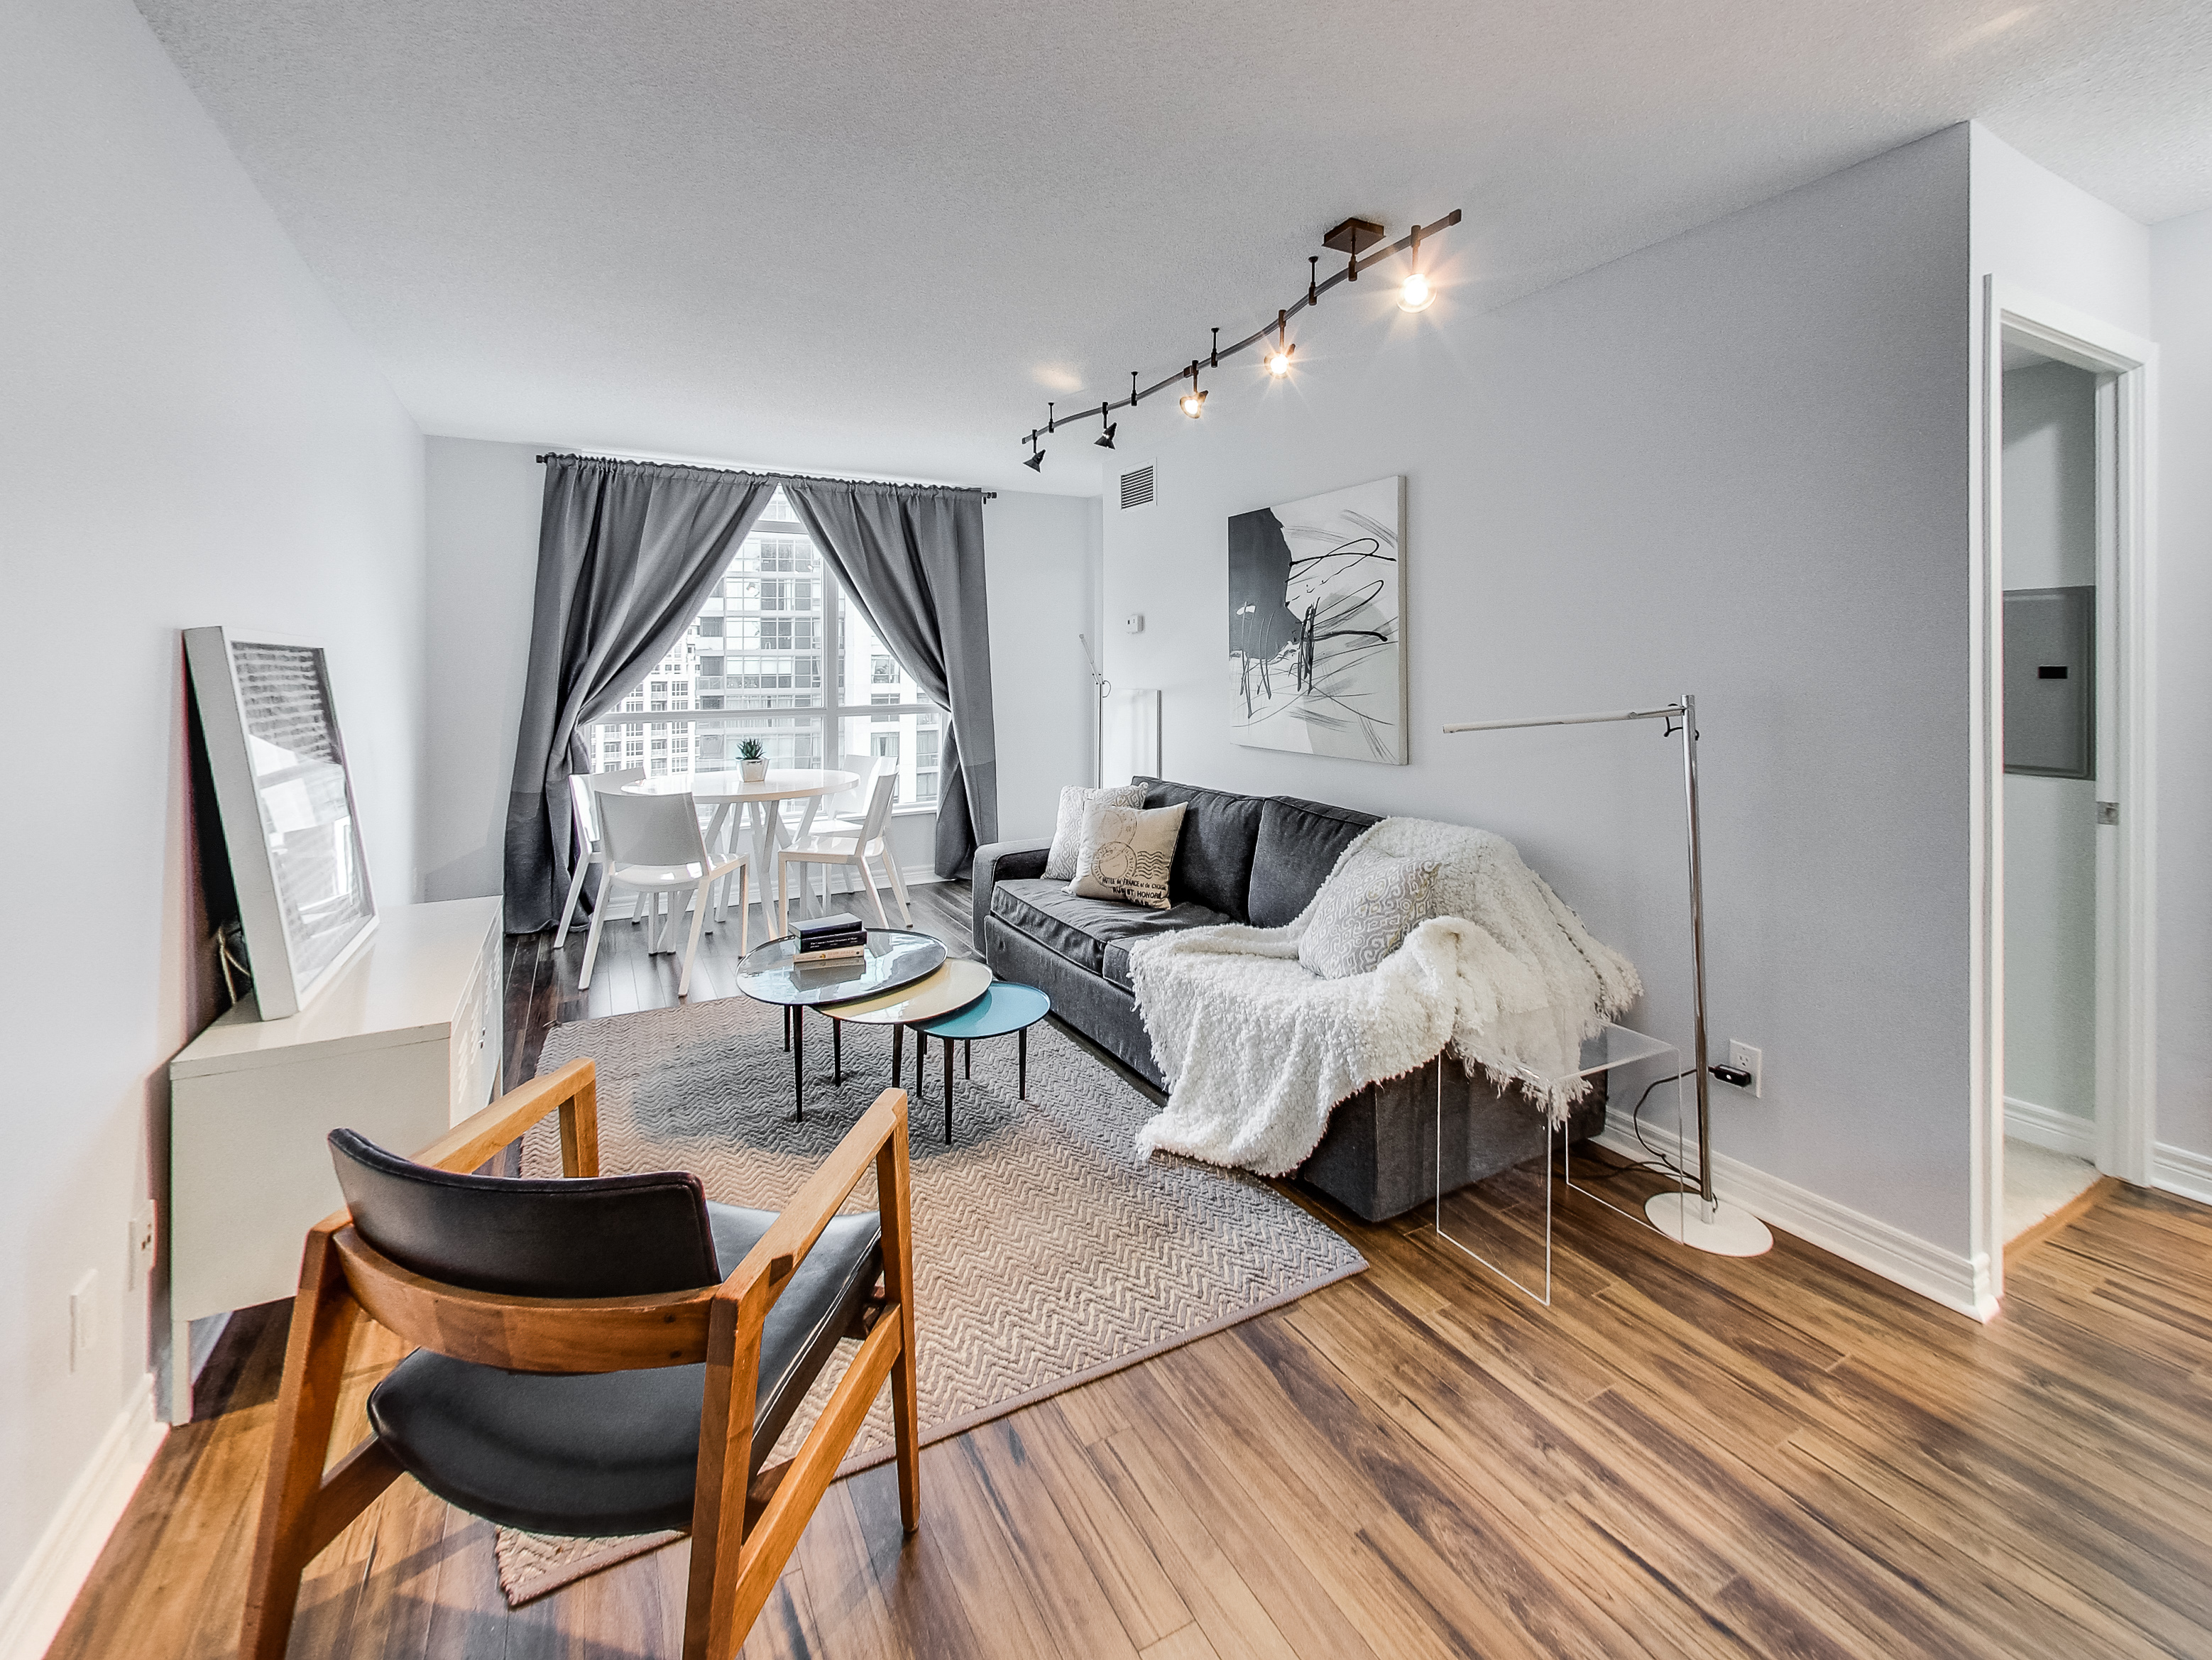 living room with cozy couch, wooden flooring, carpet, small balcony